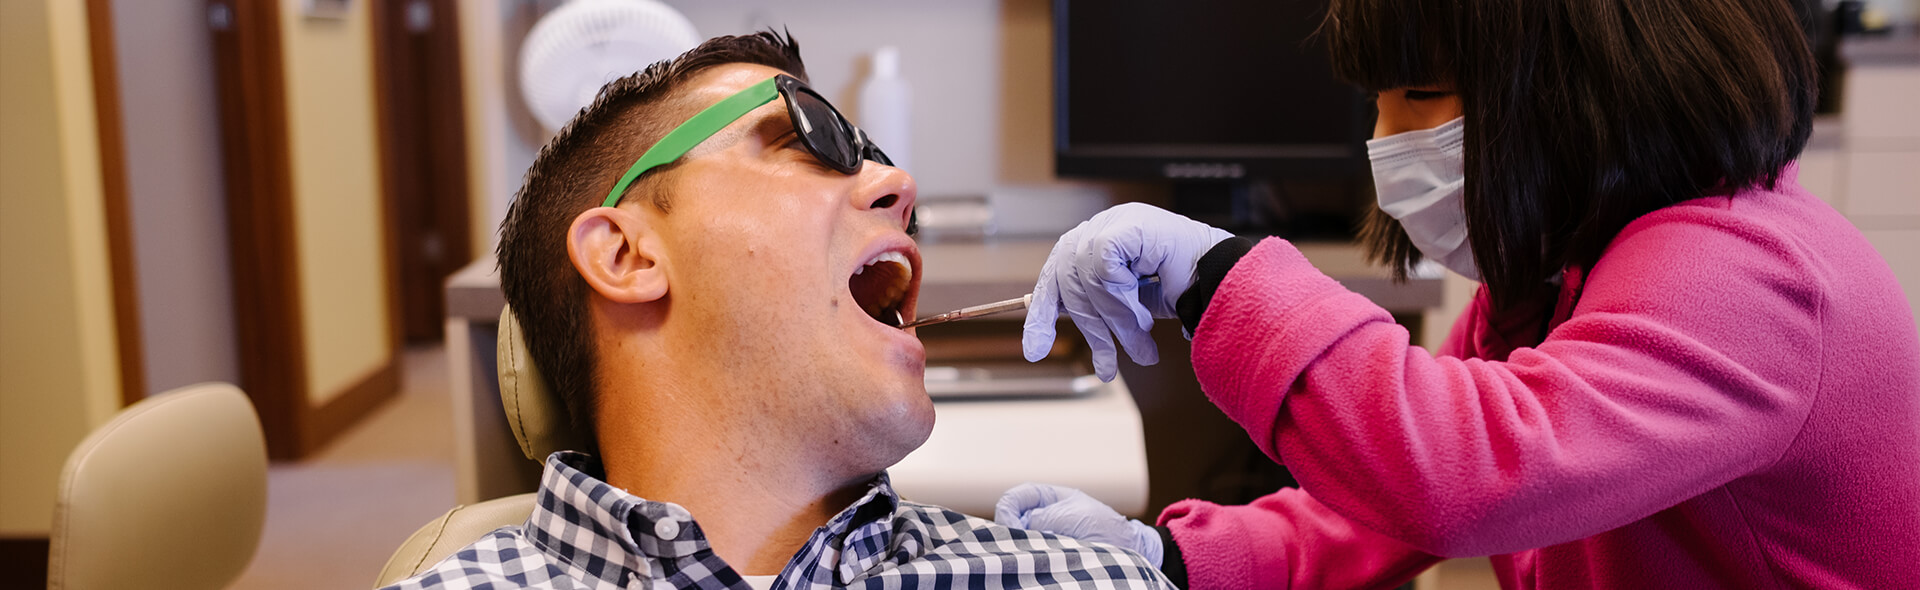 Fun with the doctor - Pediatric Dentist in Noblesville, IN